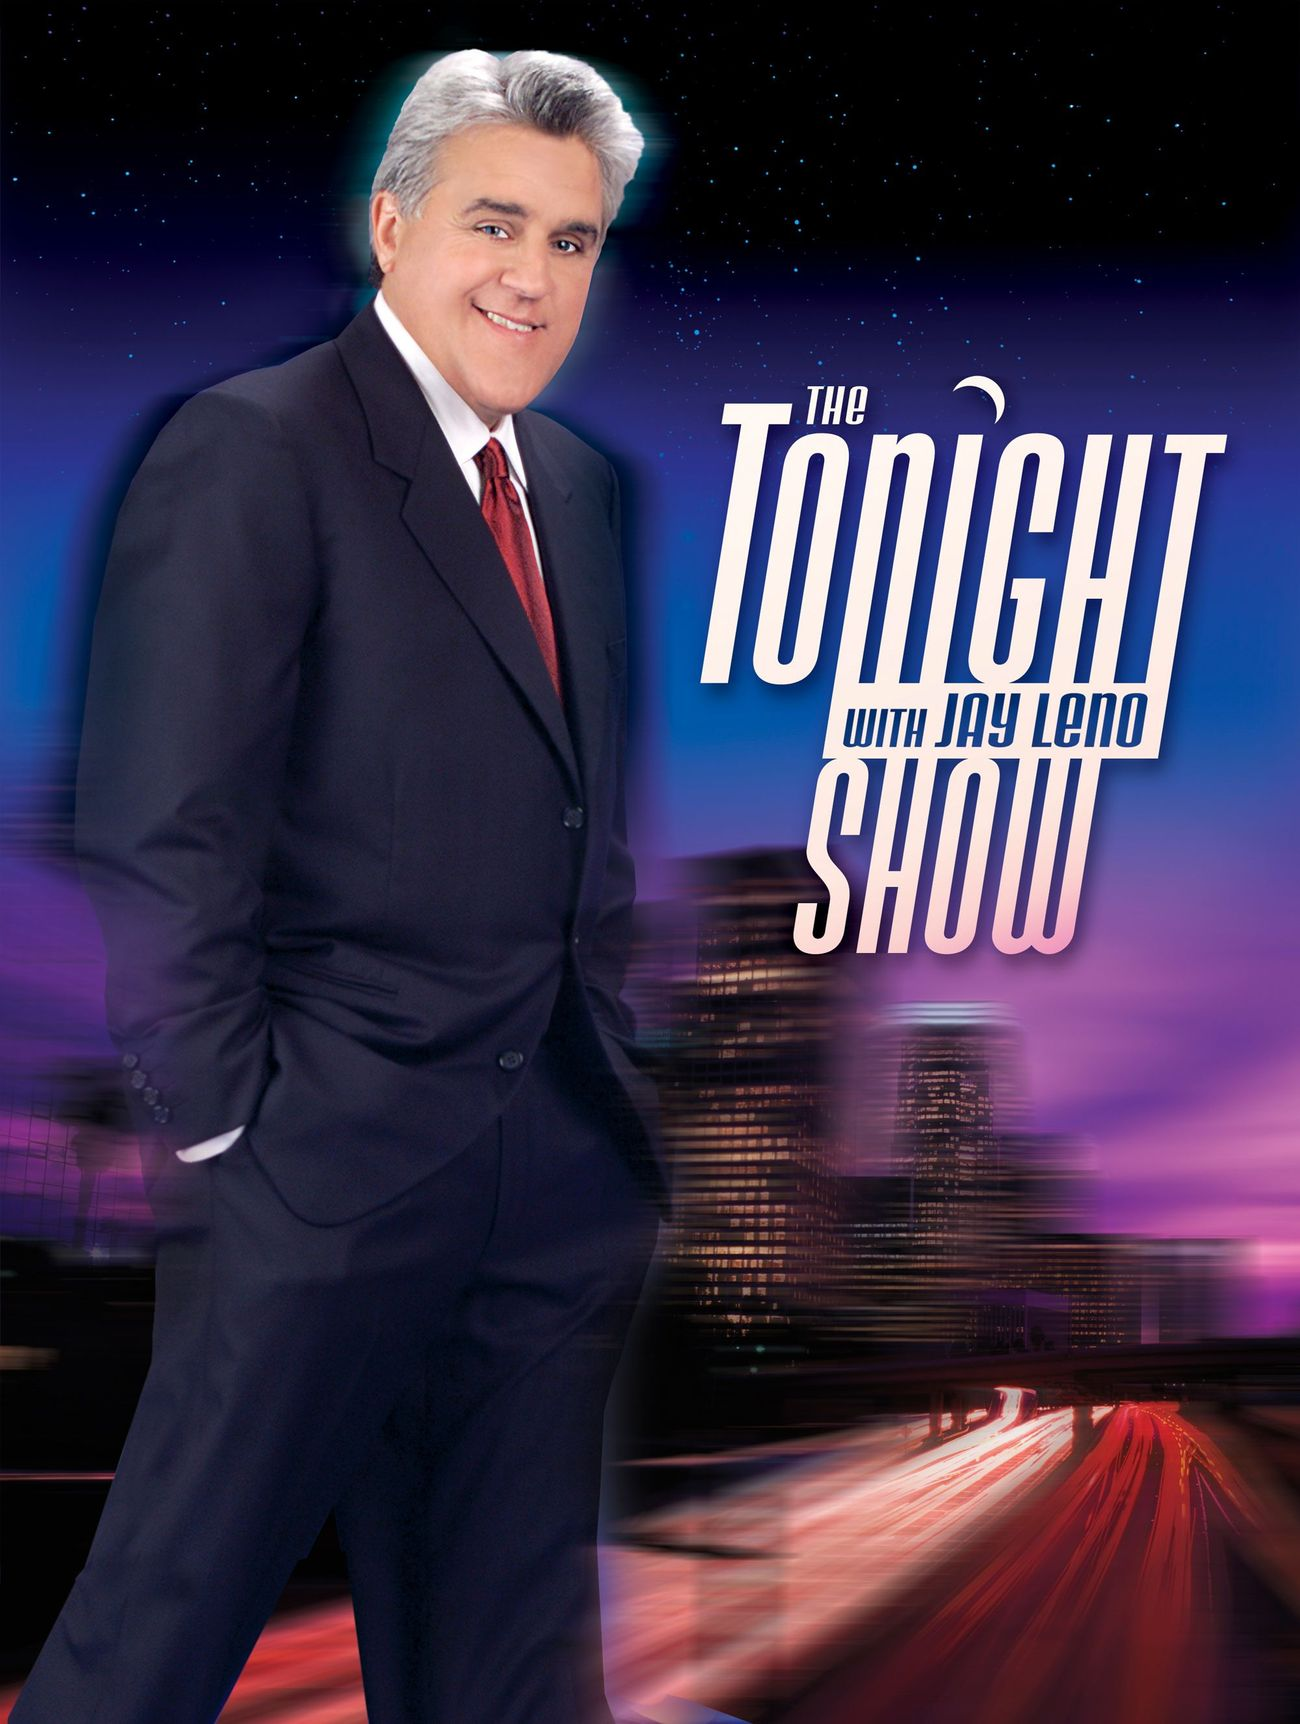 Where is the tonight show with jay leno filmed